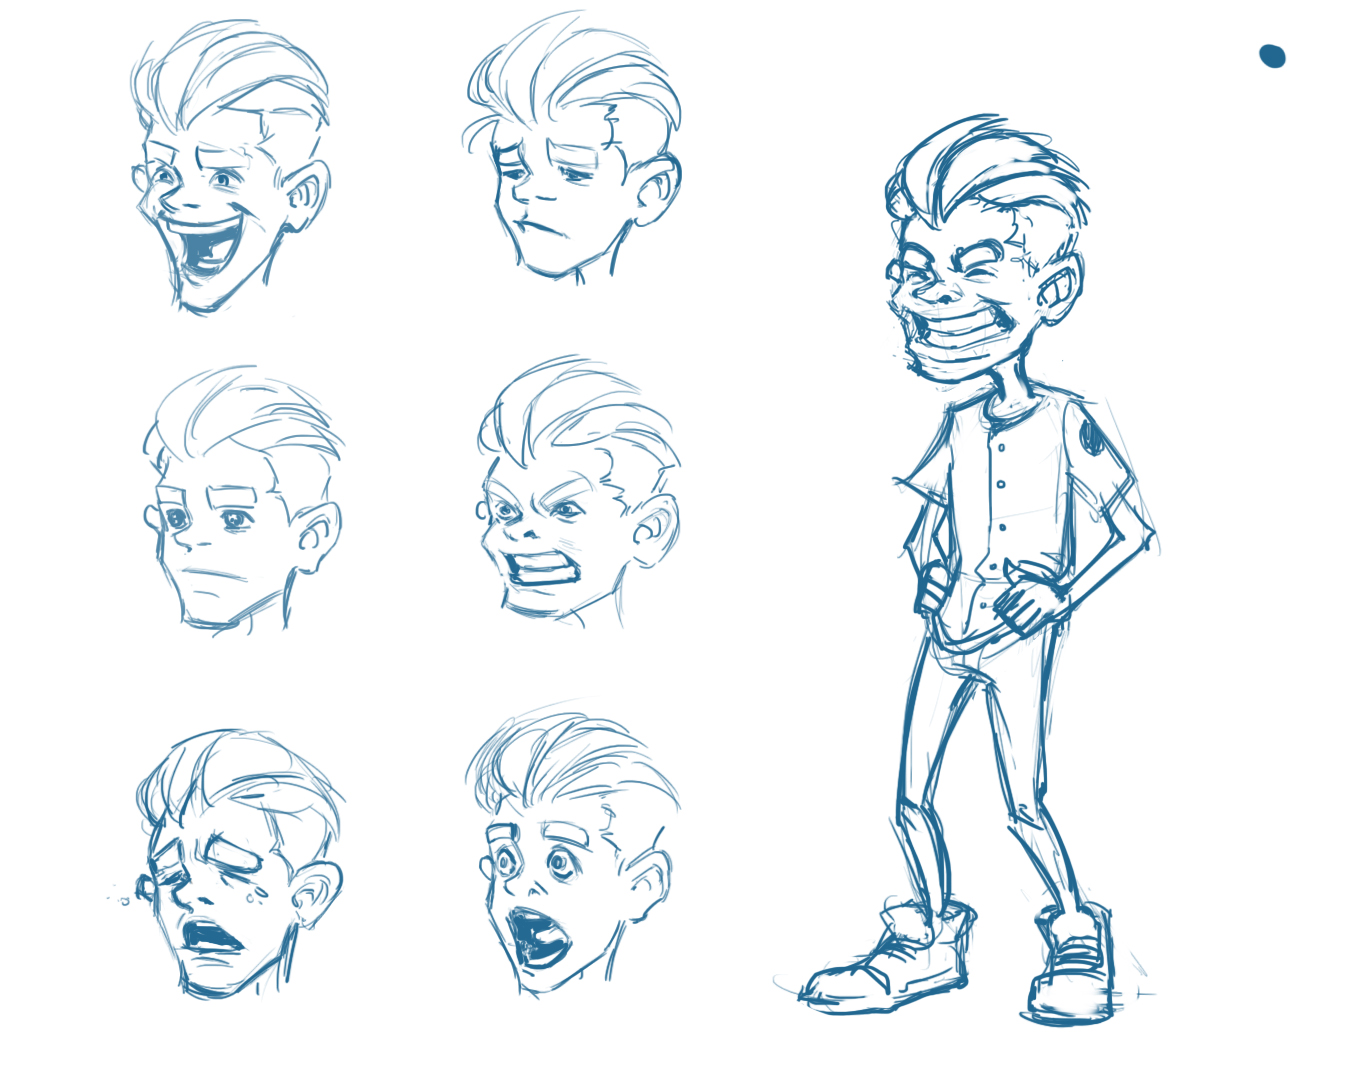 cartoon style character.jpg